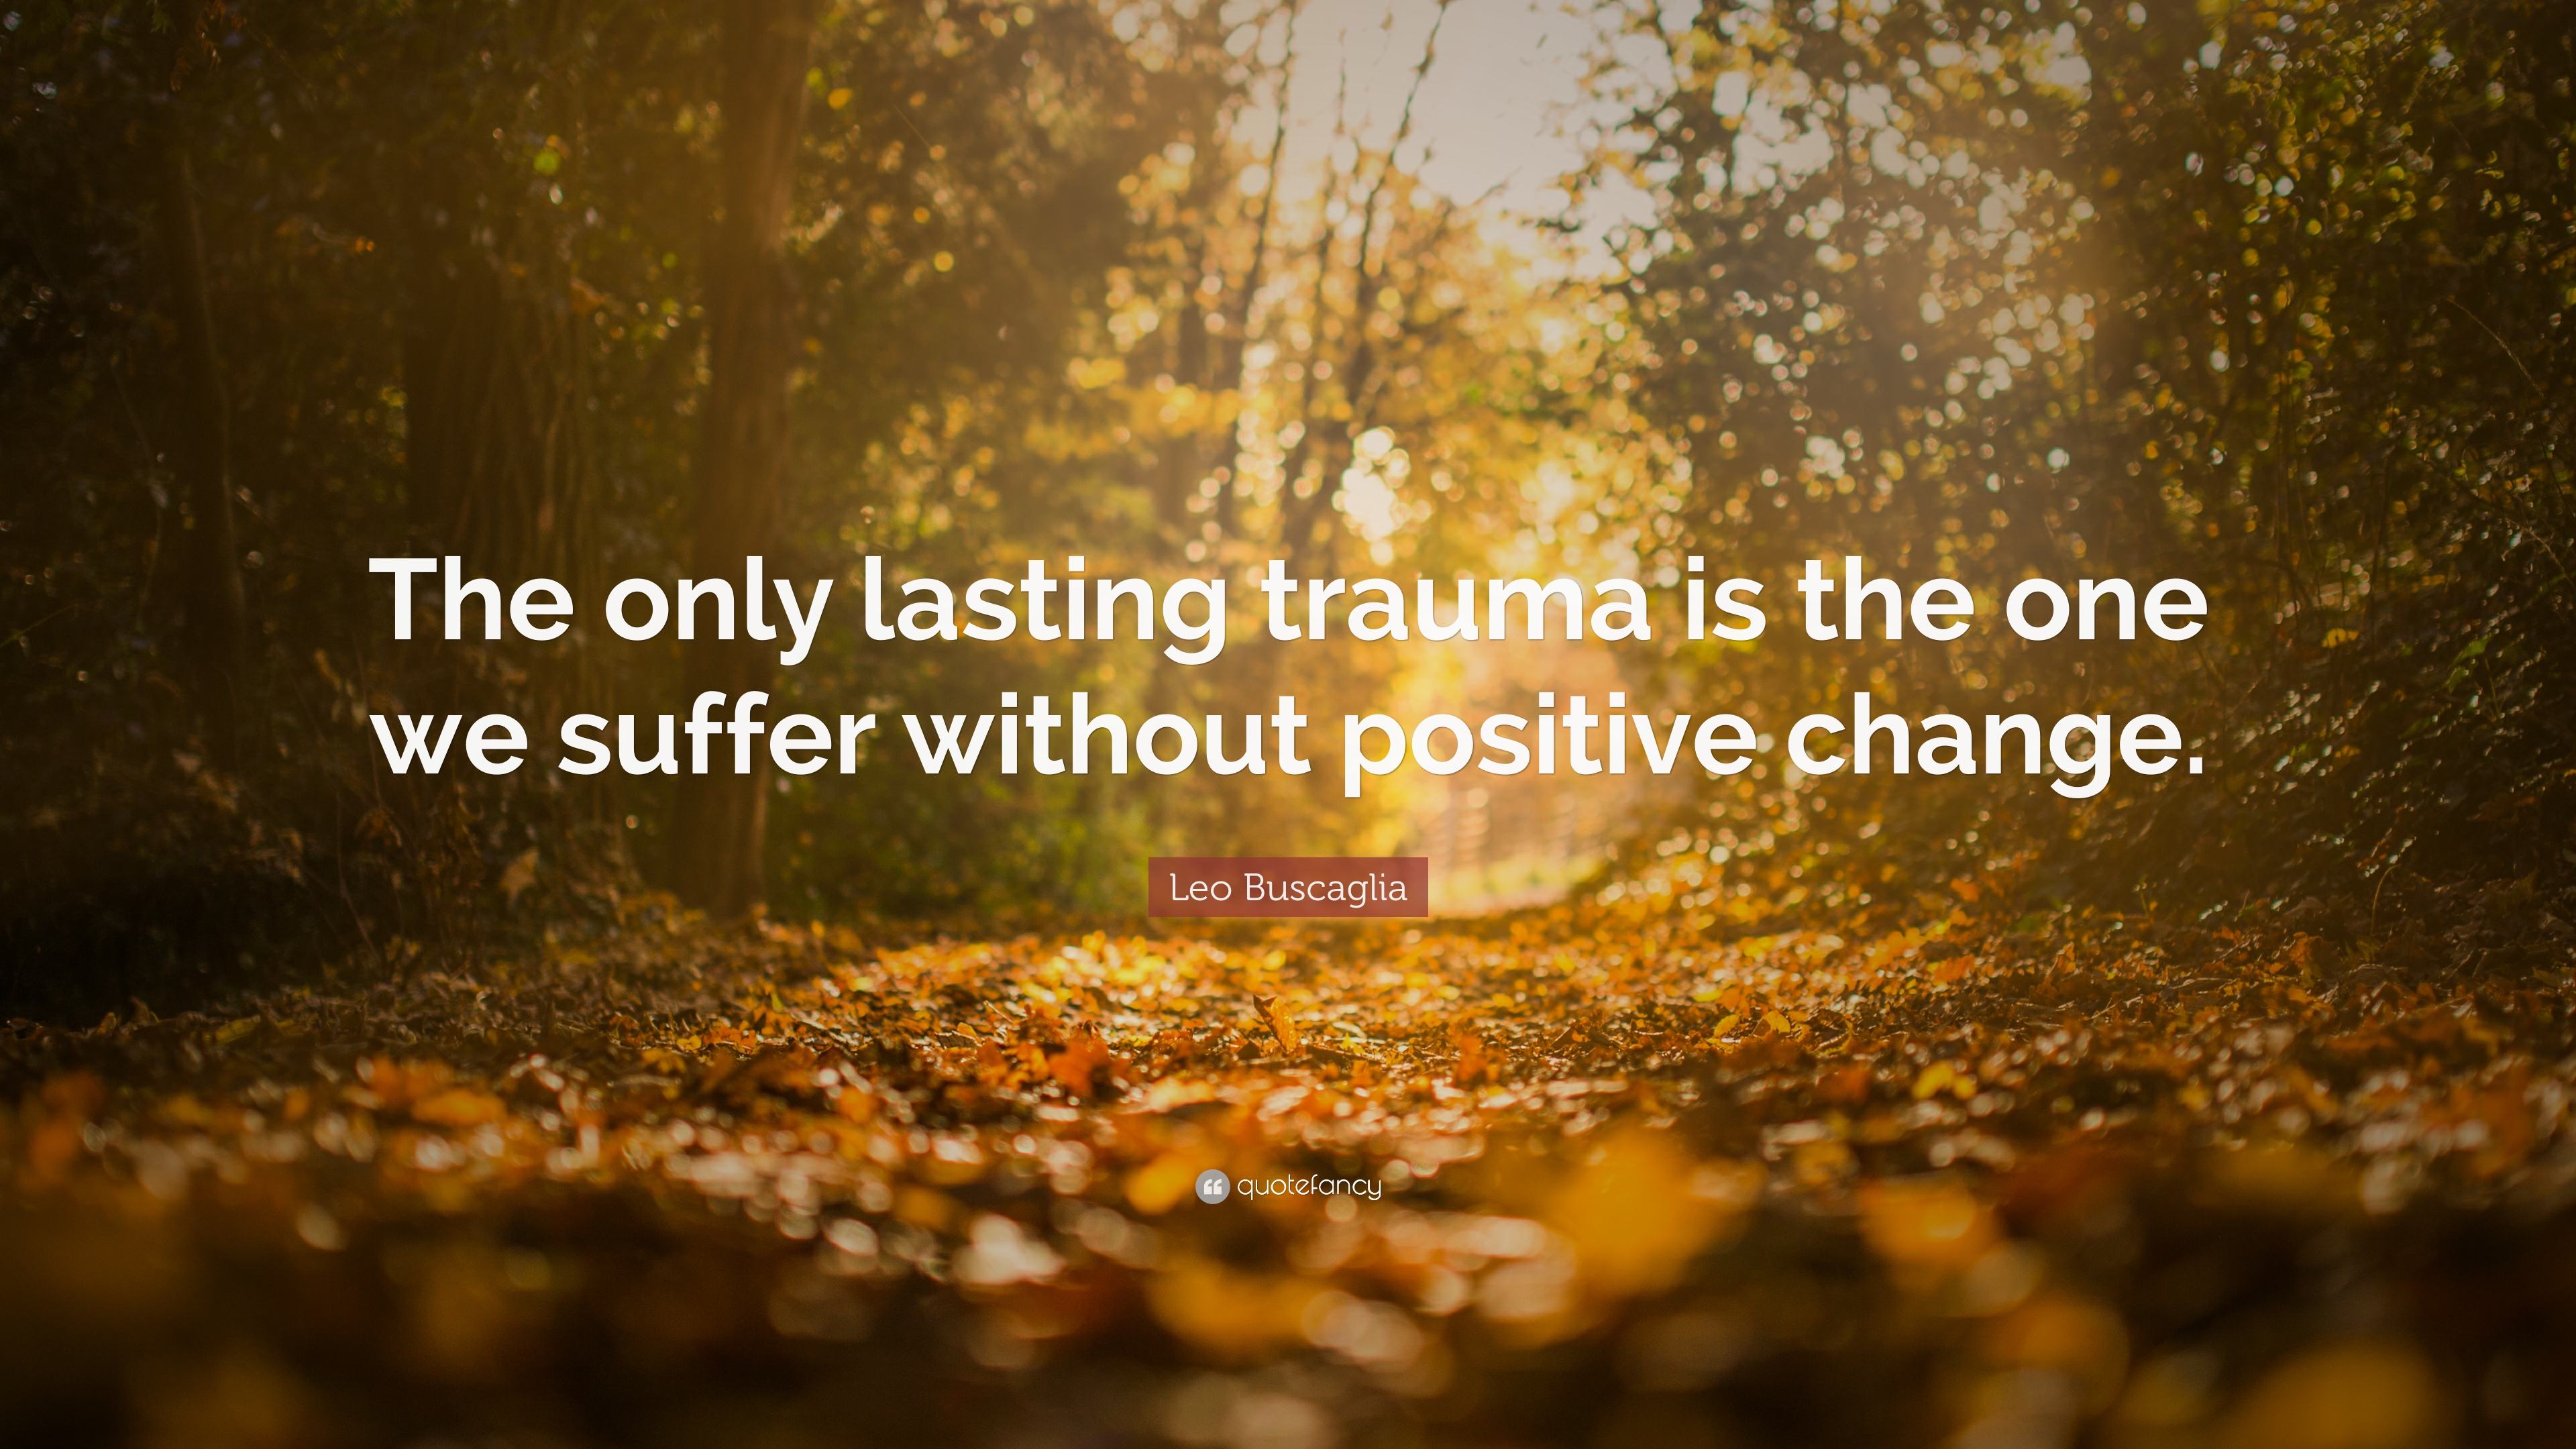 Leo Buscaglia Quote: U201cThe Only Lasting Trauma Is The One We Suffer Without  Positive